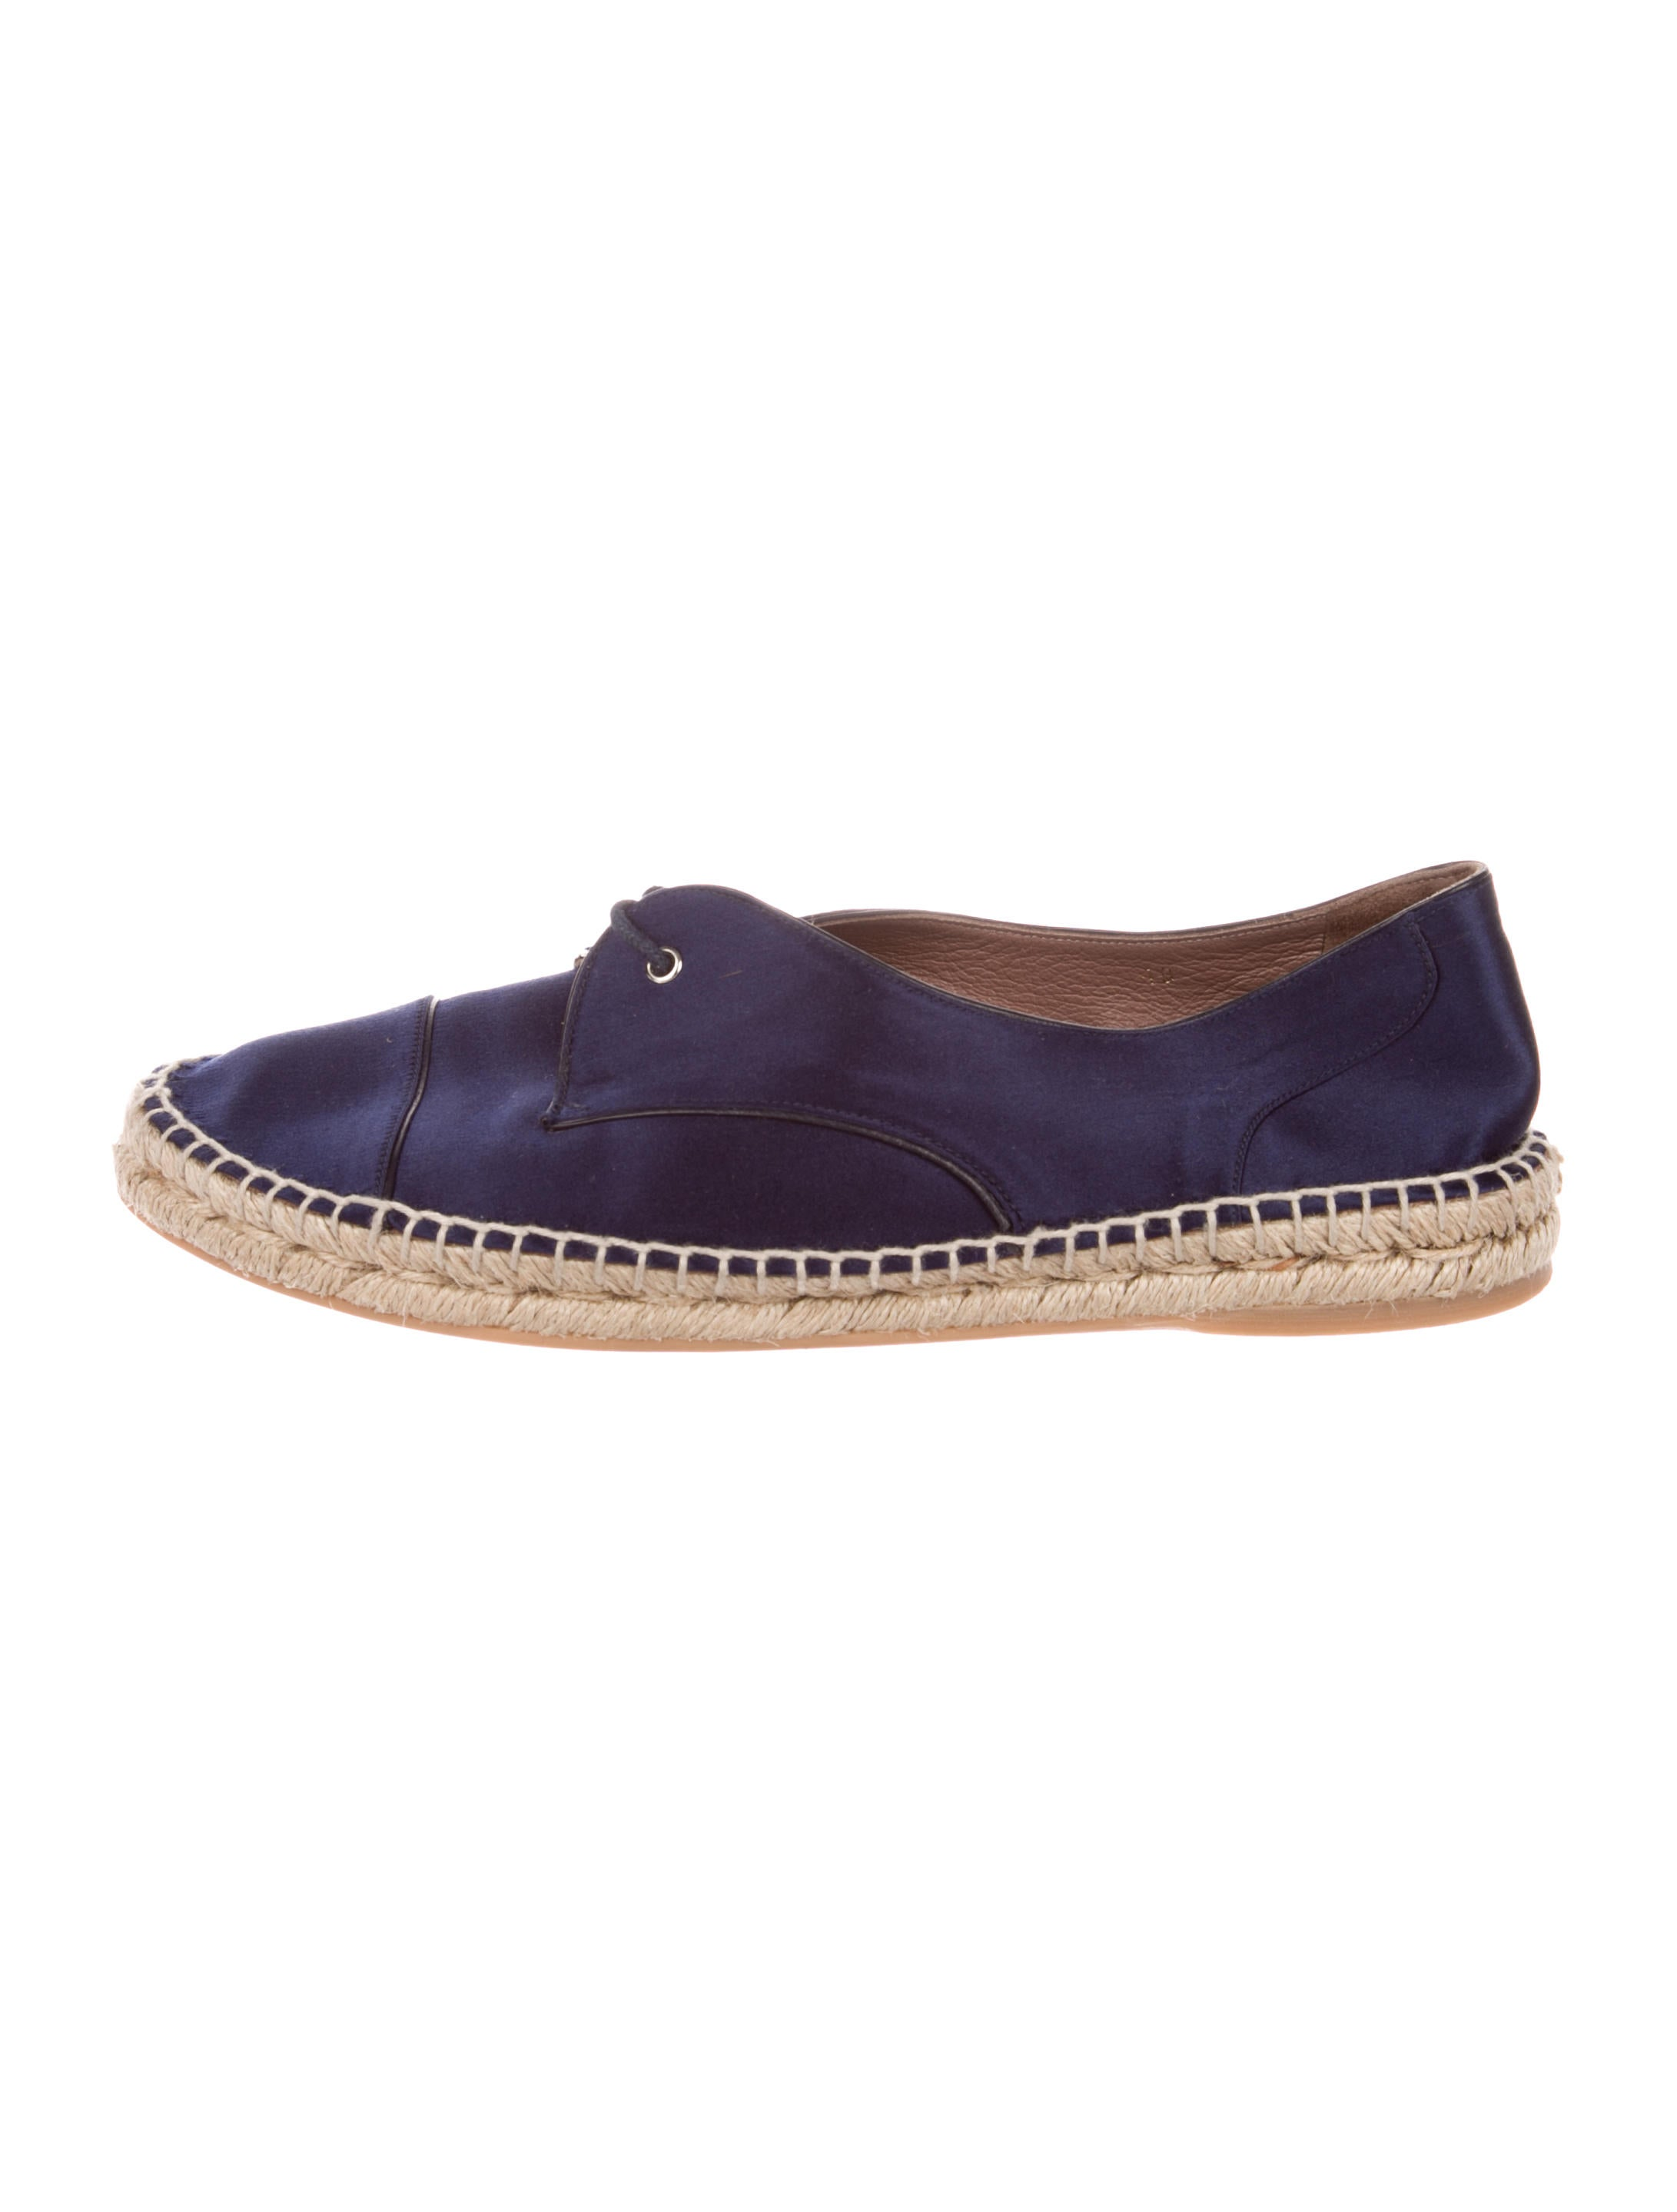 outlet visit free shipping pay with visa Tabitha Simmons Satin Espadrille Sneakers Manchester for sale shop offer D1JLQXGTr